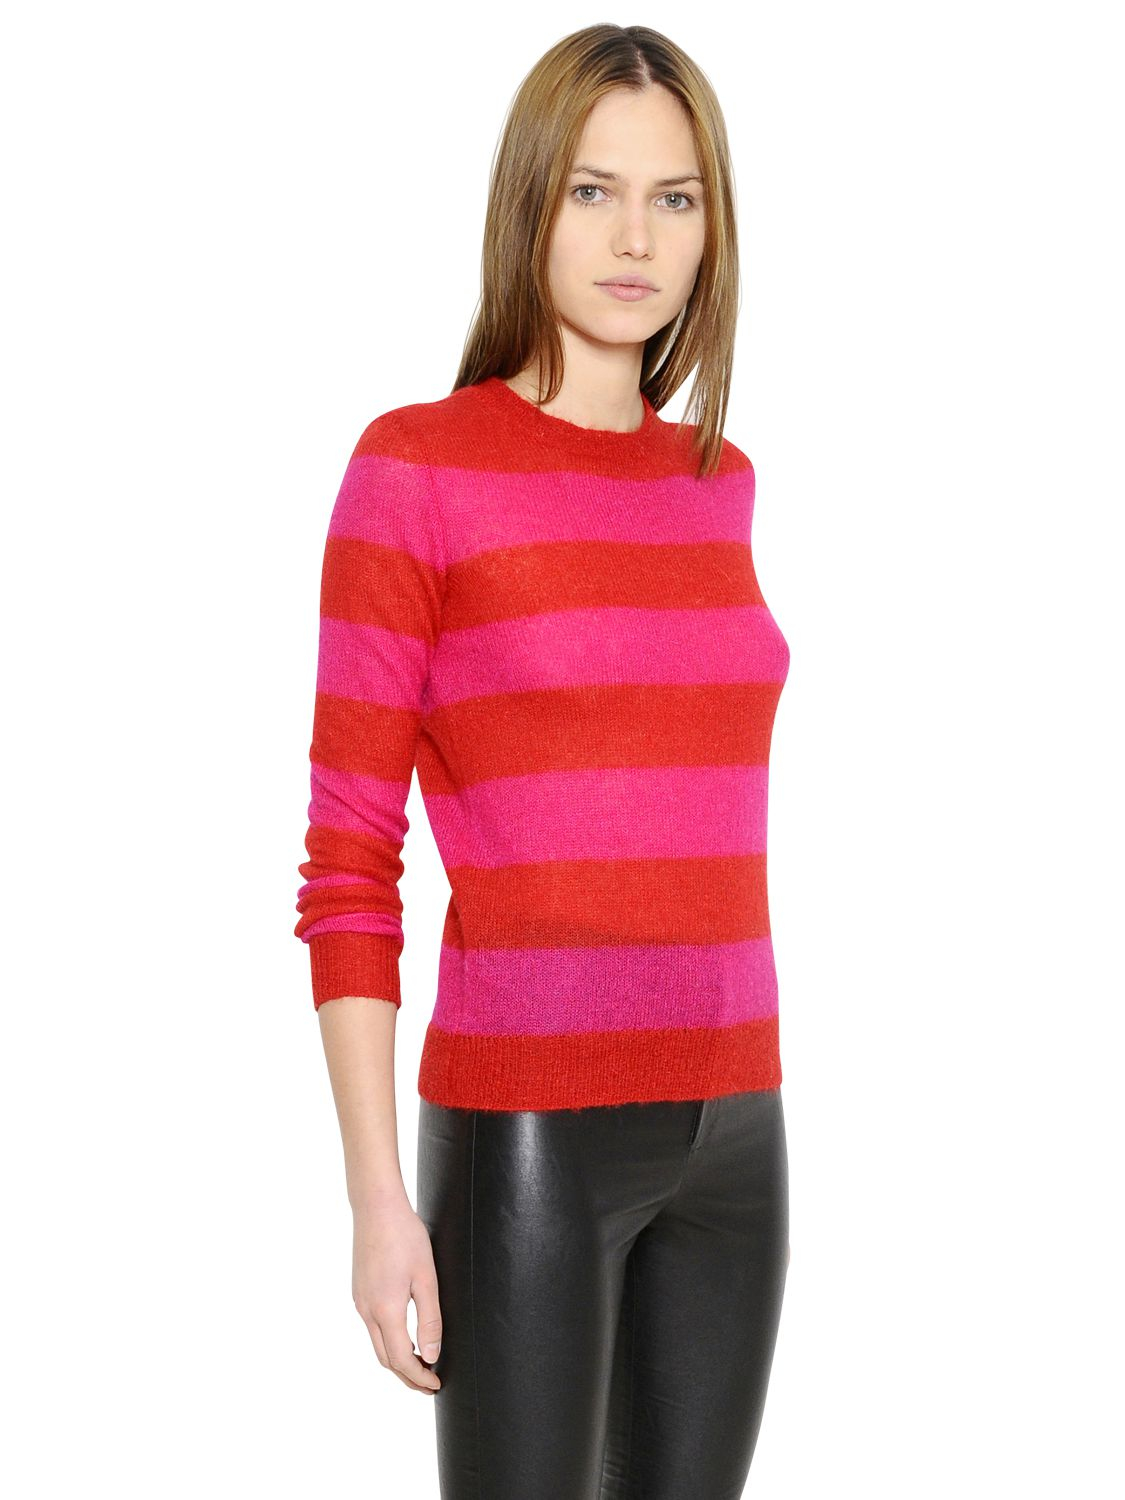 Étoile isabel marant Striped Mohair & Wool Sweater in Pink | Lyst